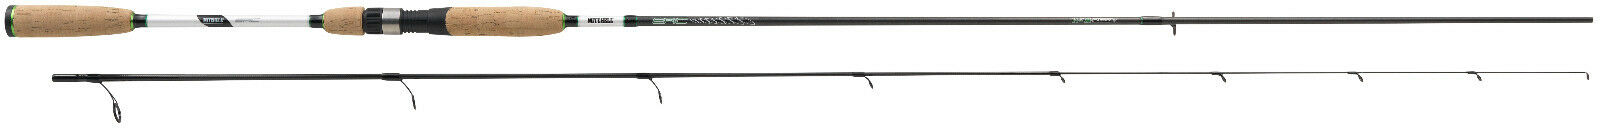 Mitchell Epic Spinning Rod Rute Angelrute Spinnrute Spinrute Steckrute